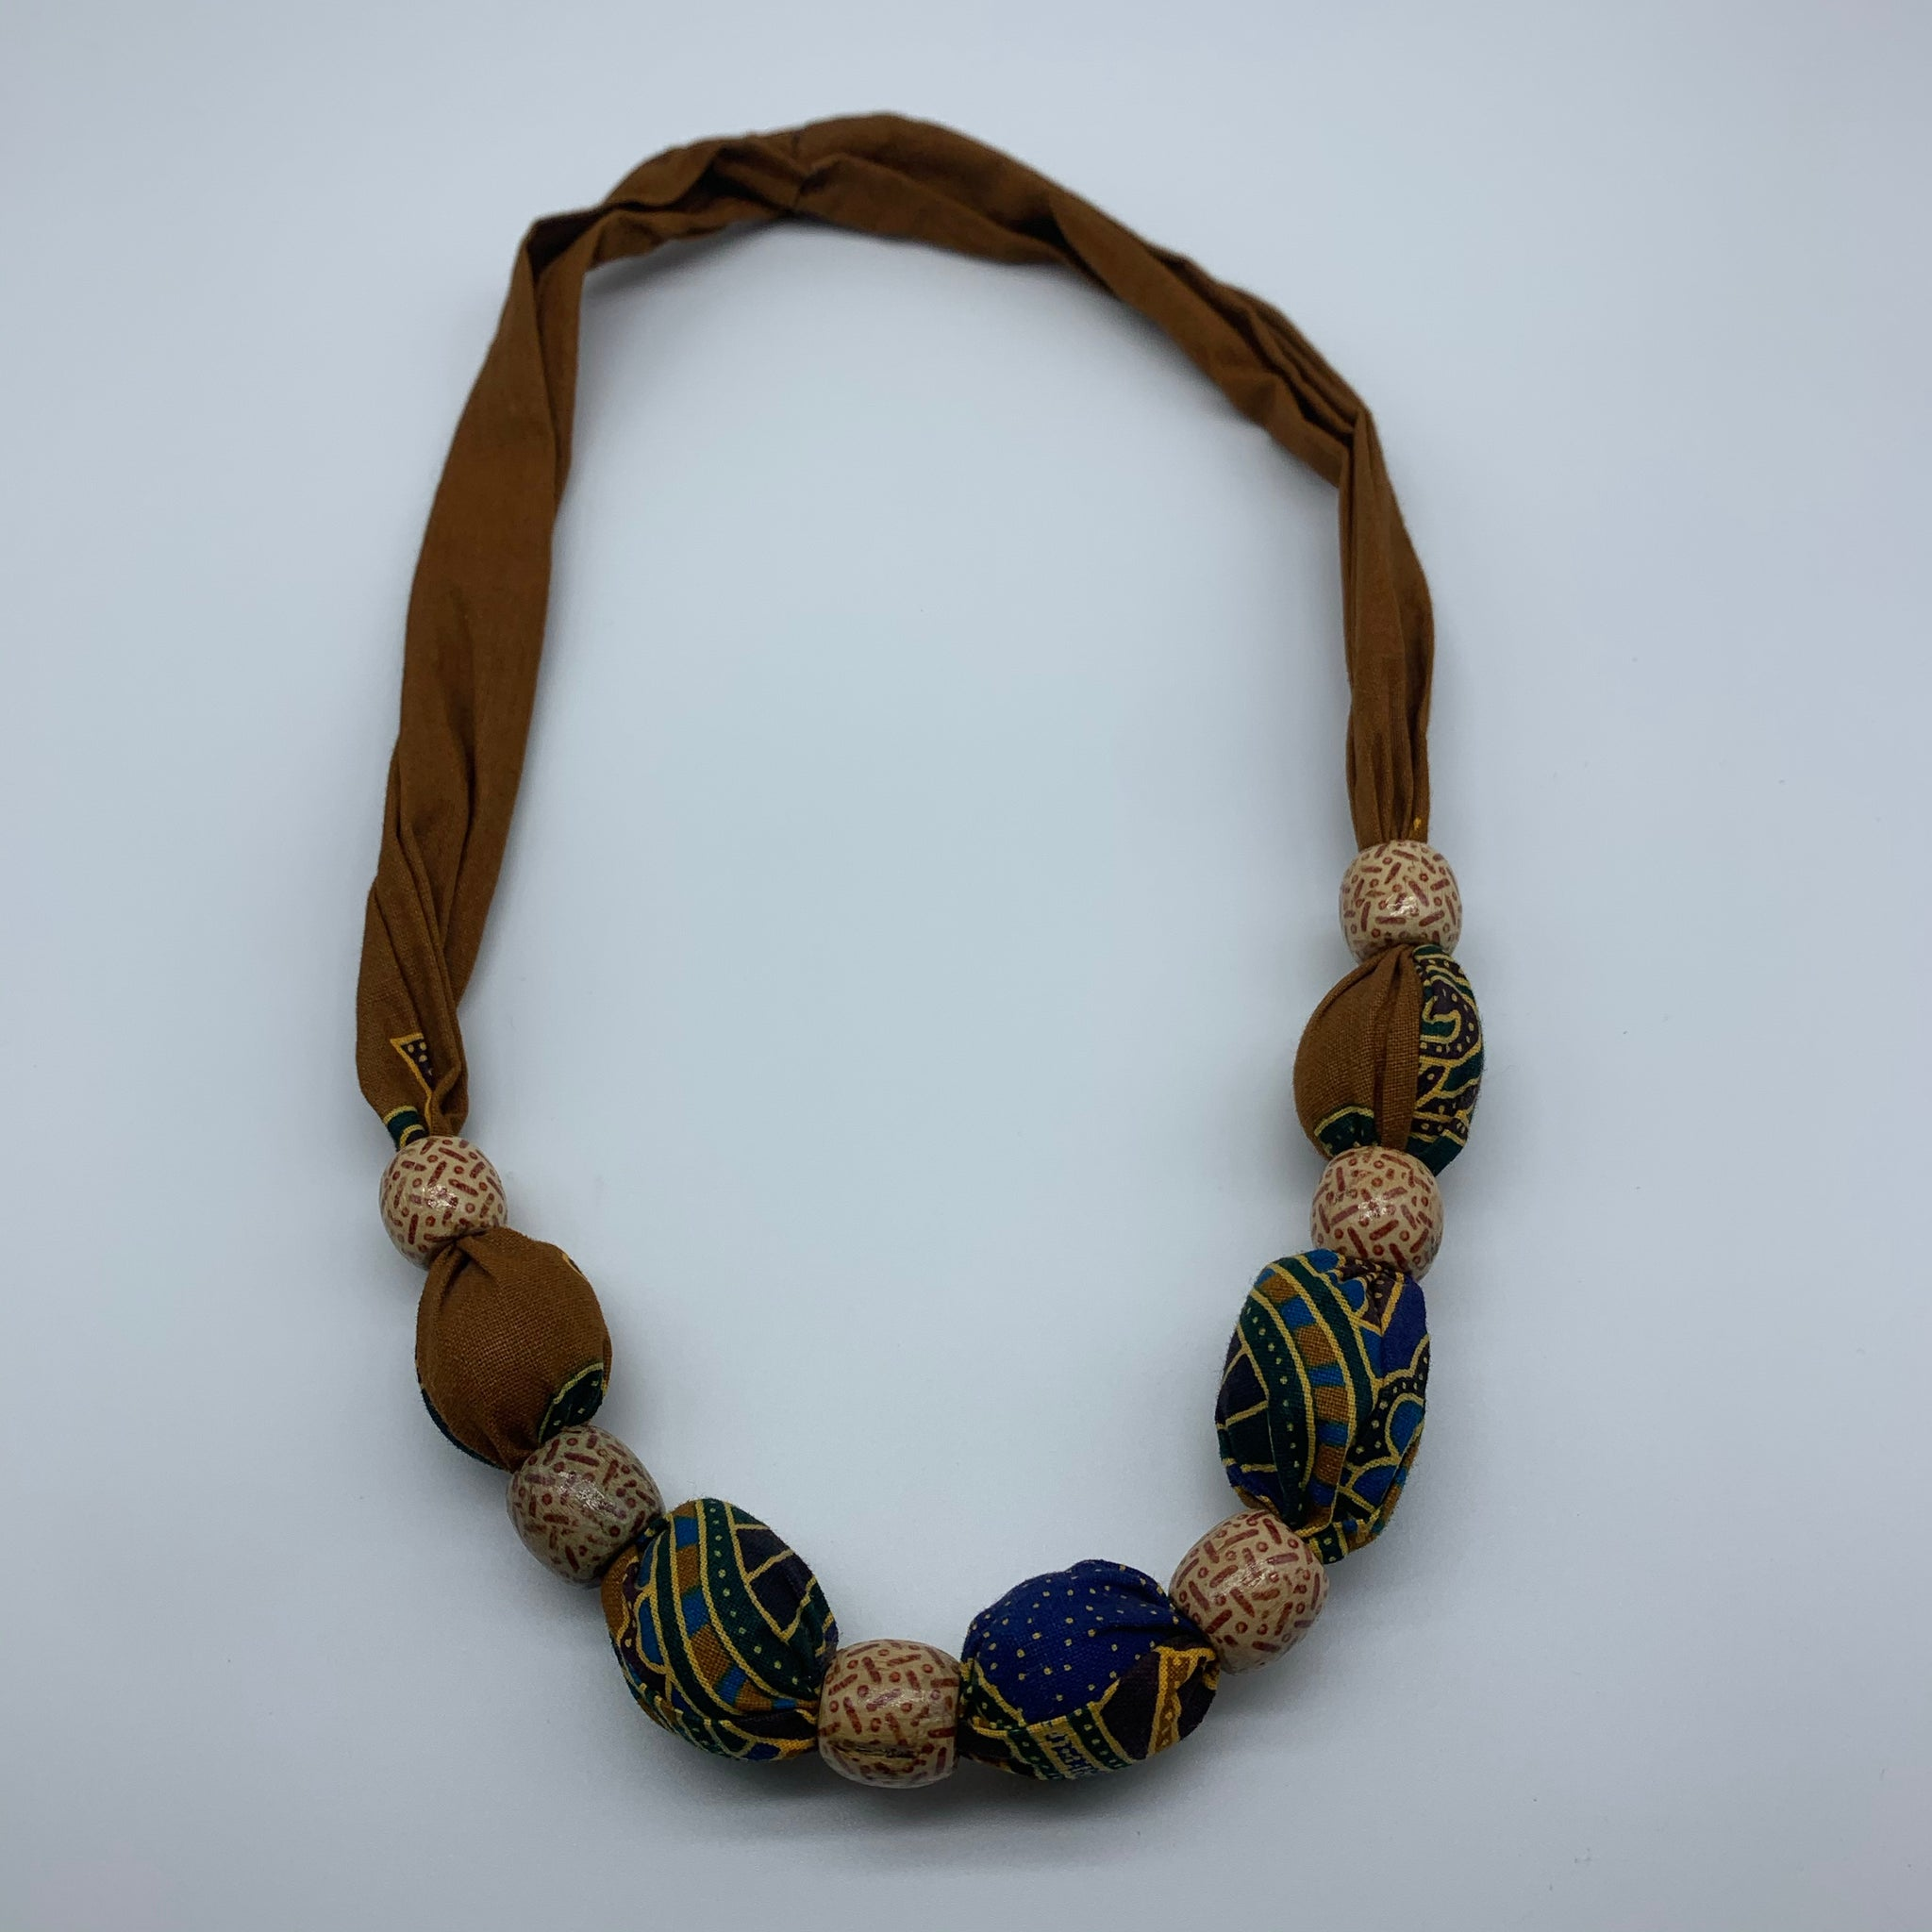 African Print Necklace W/Wooden Beads-Brown Variation 2